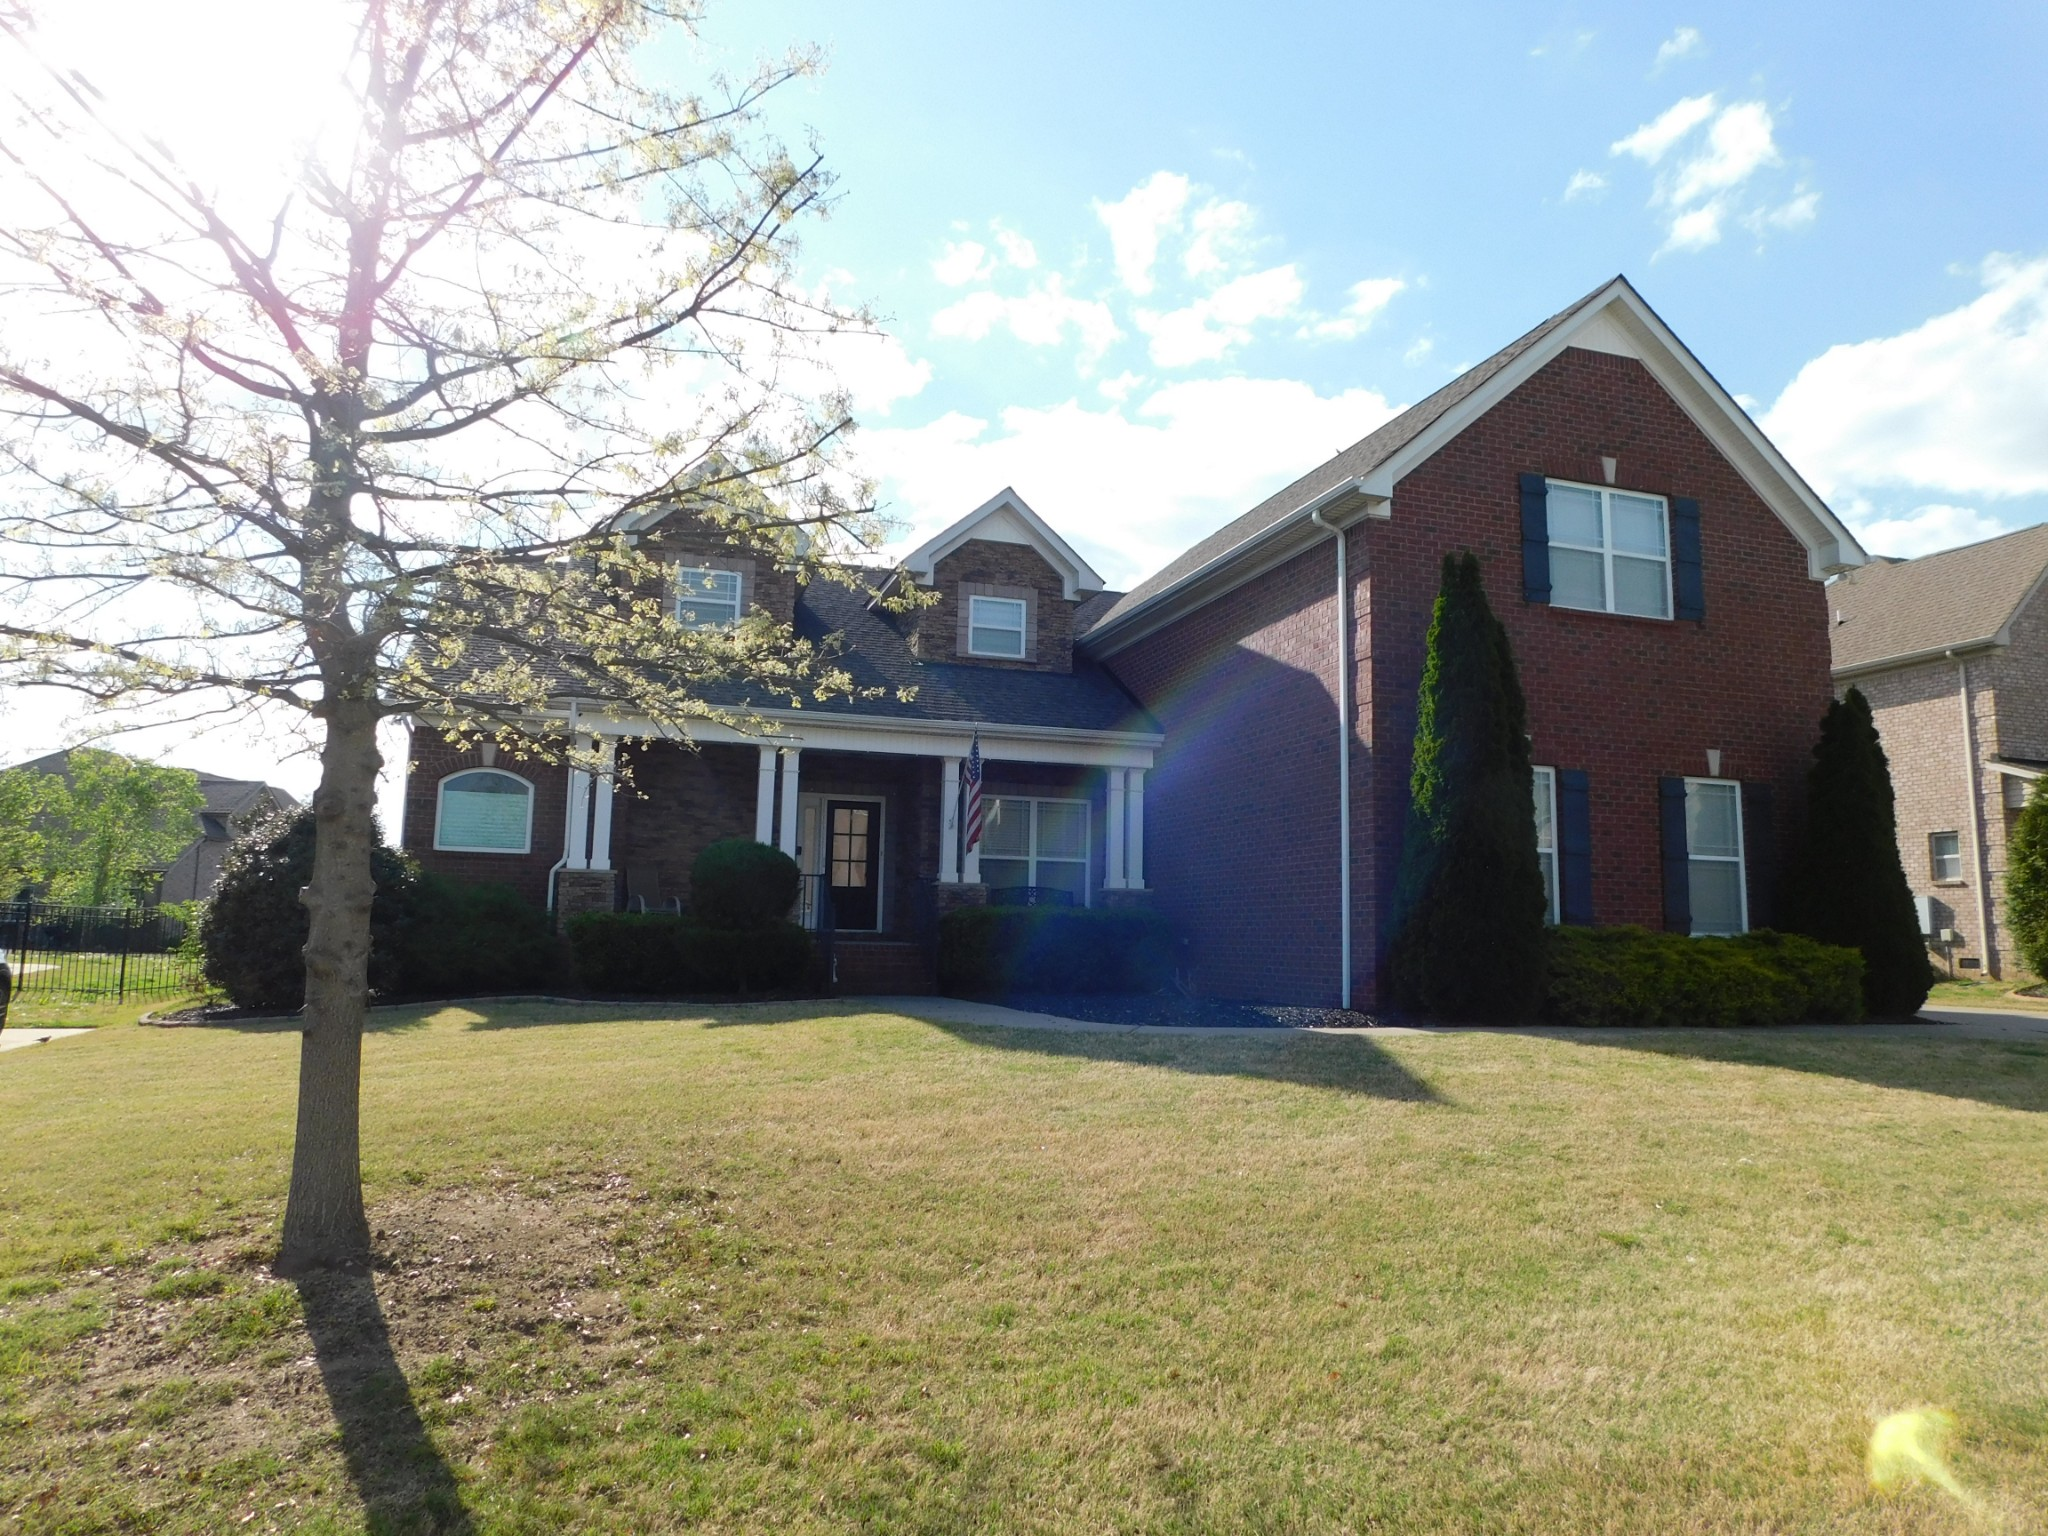 JUST IN TIME FOR POOL SEASON! This 5 bedroom/4 full bath home could be yours soon. Lots of upgrades, storage and room. Backyard that includes 14'x22'screened in porch with wood burning fireplace. X-large bonus room.